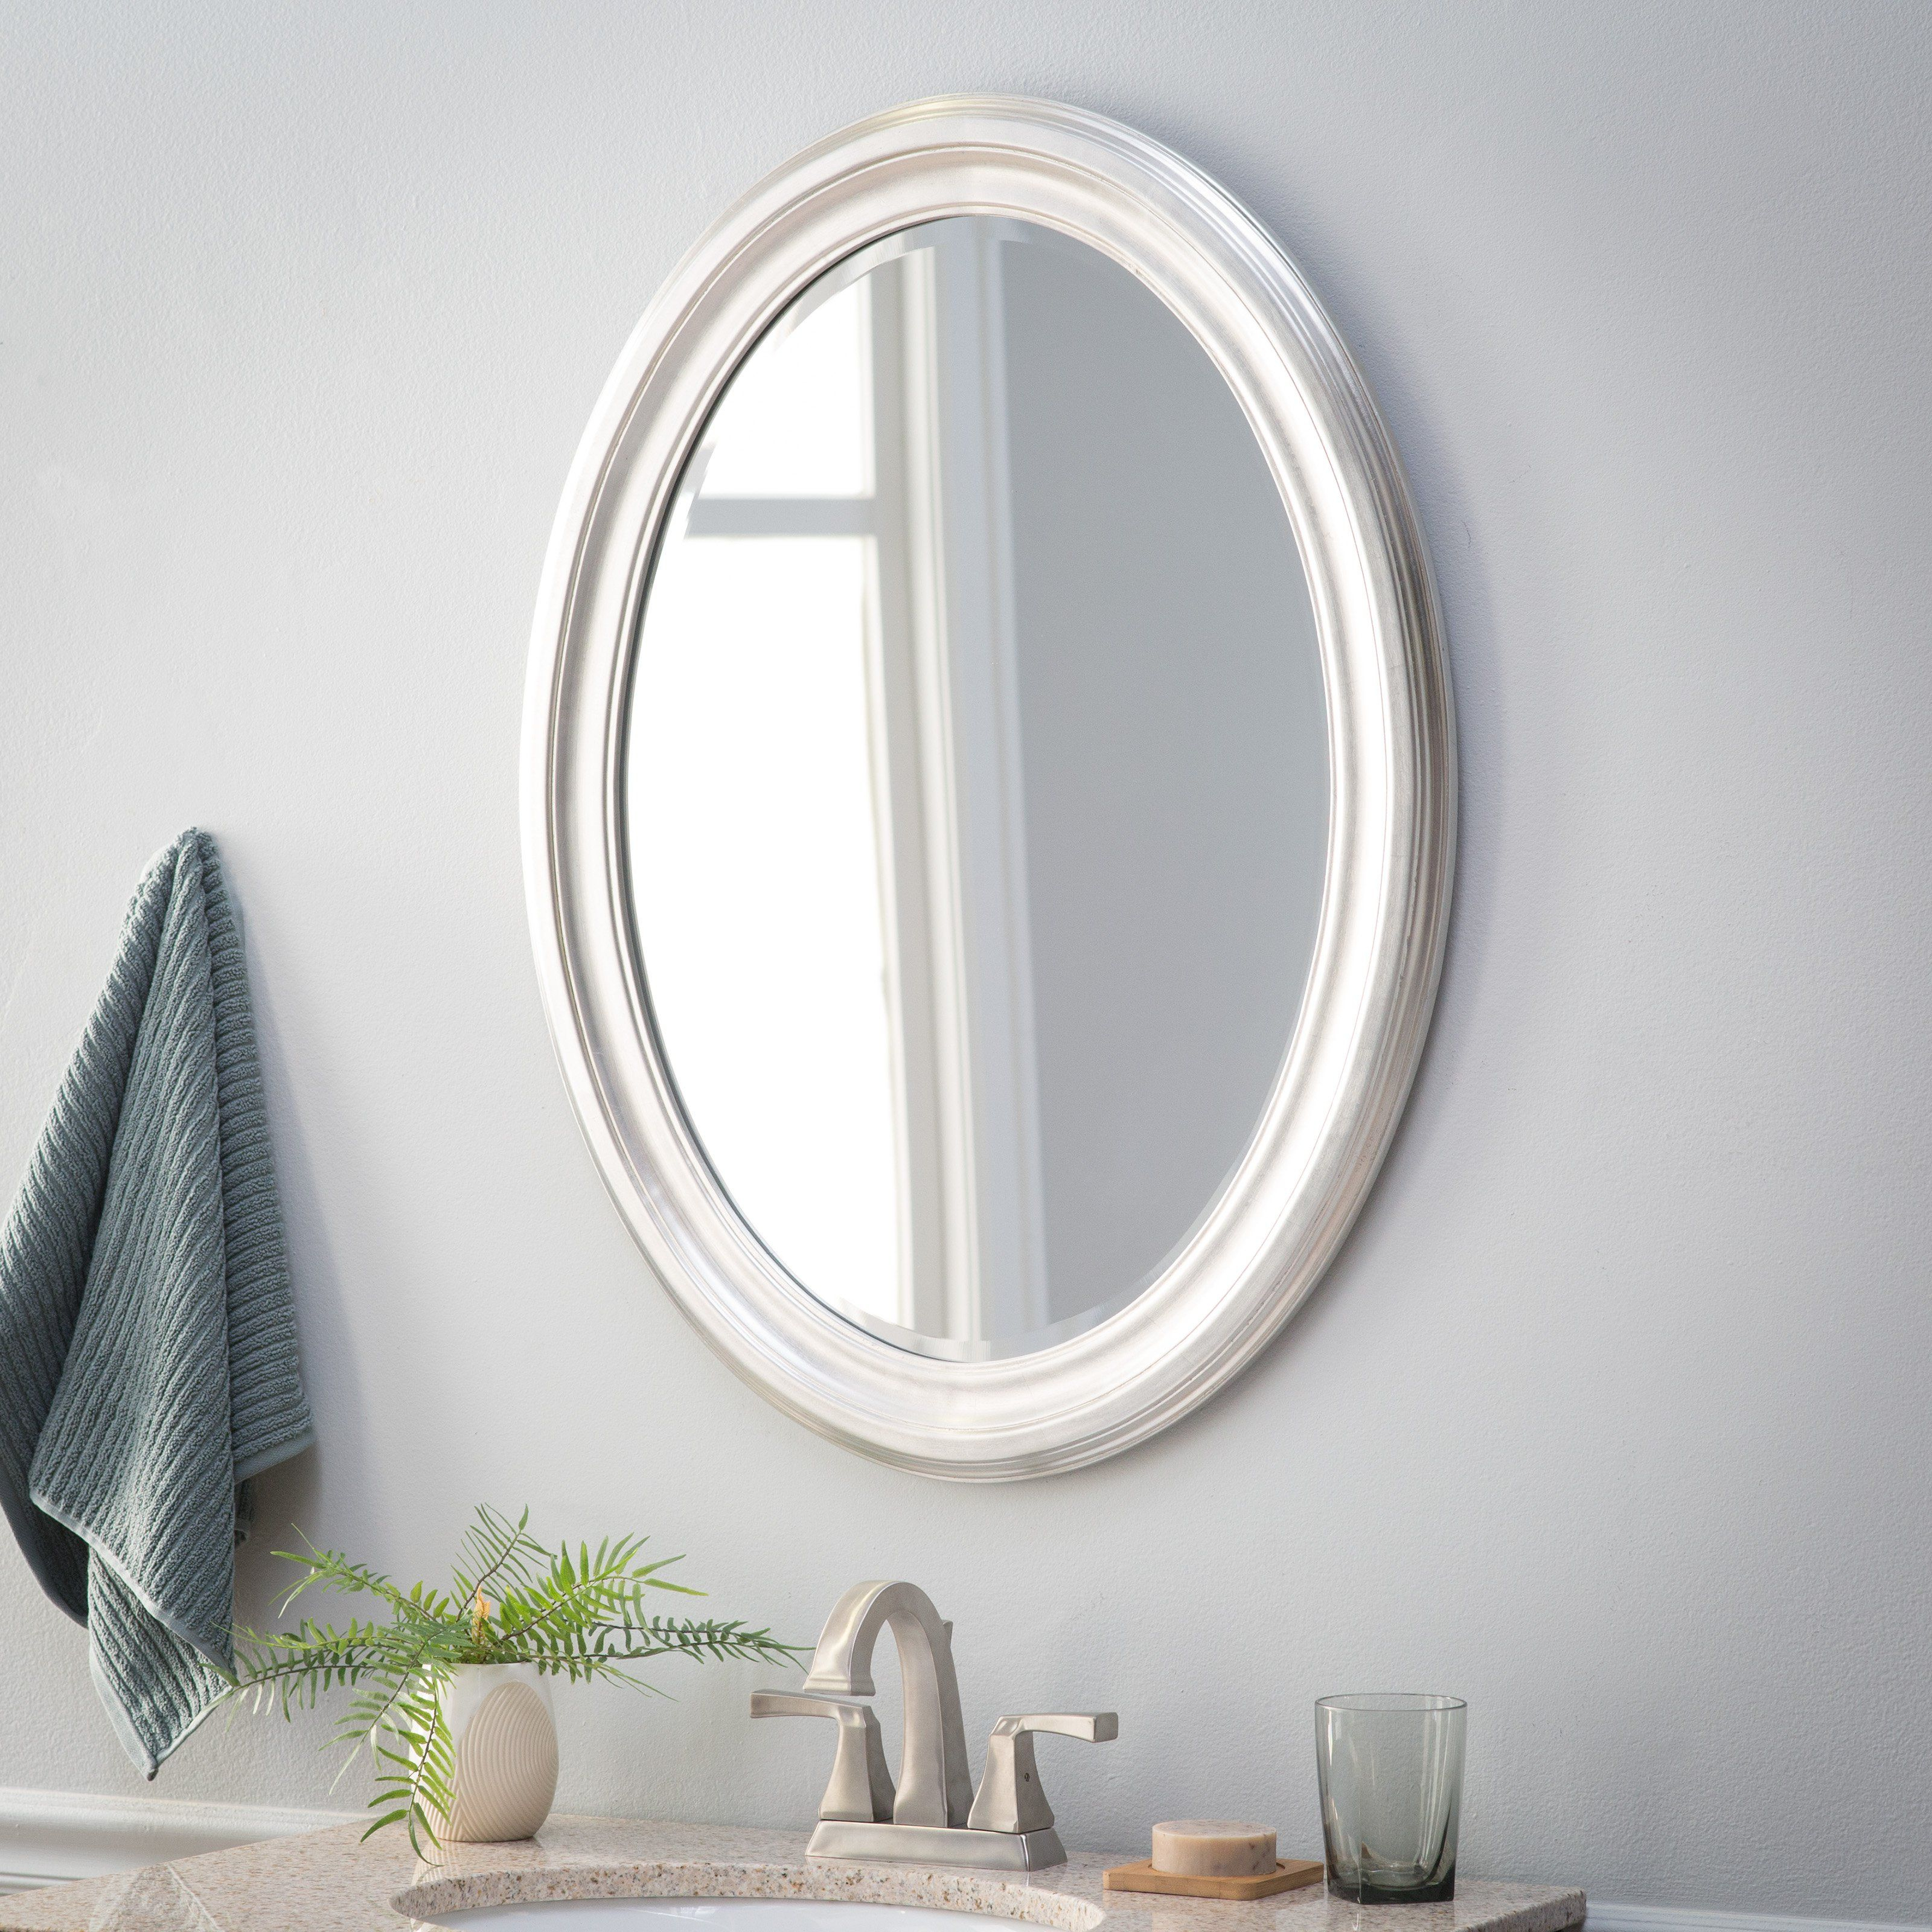 Belham Living Oval Wall Mirror - Brushed Nickel - 25W X 33H with Point Reyes Molten Round Wall Mirrors (Image 4 of 30)